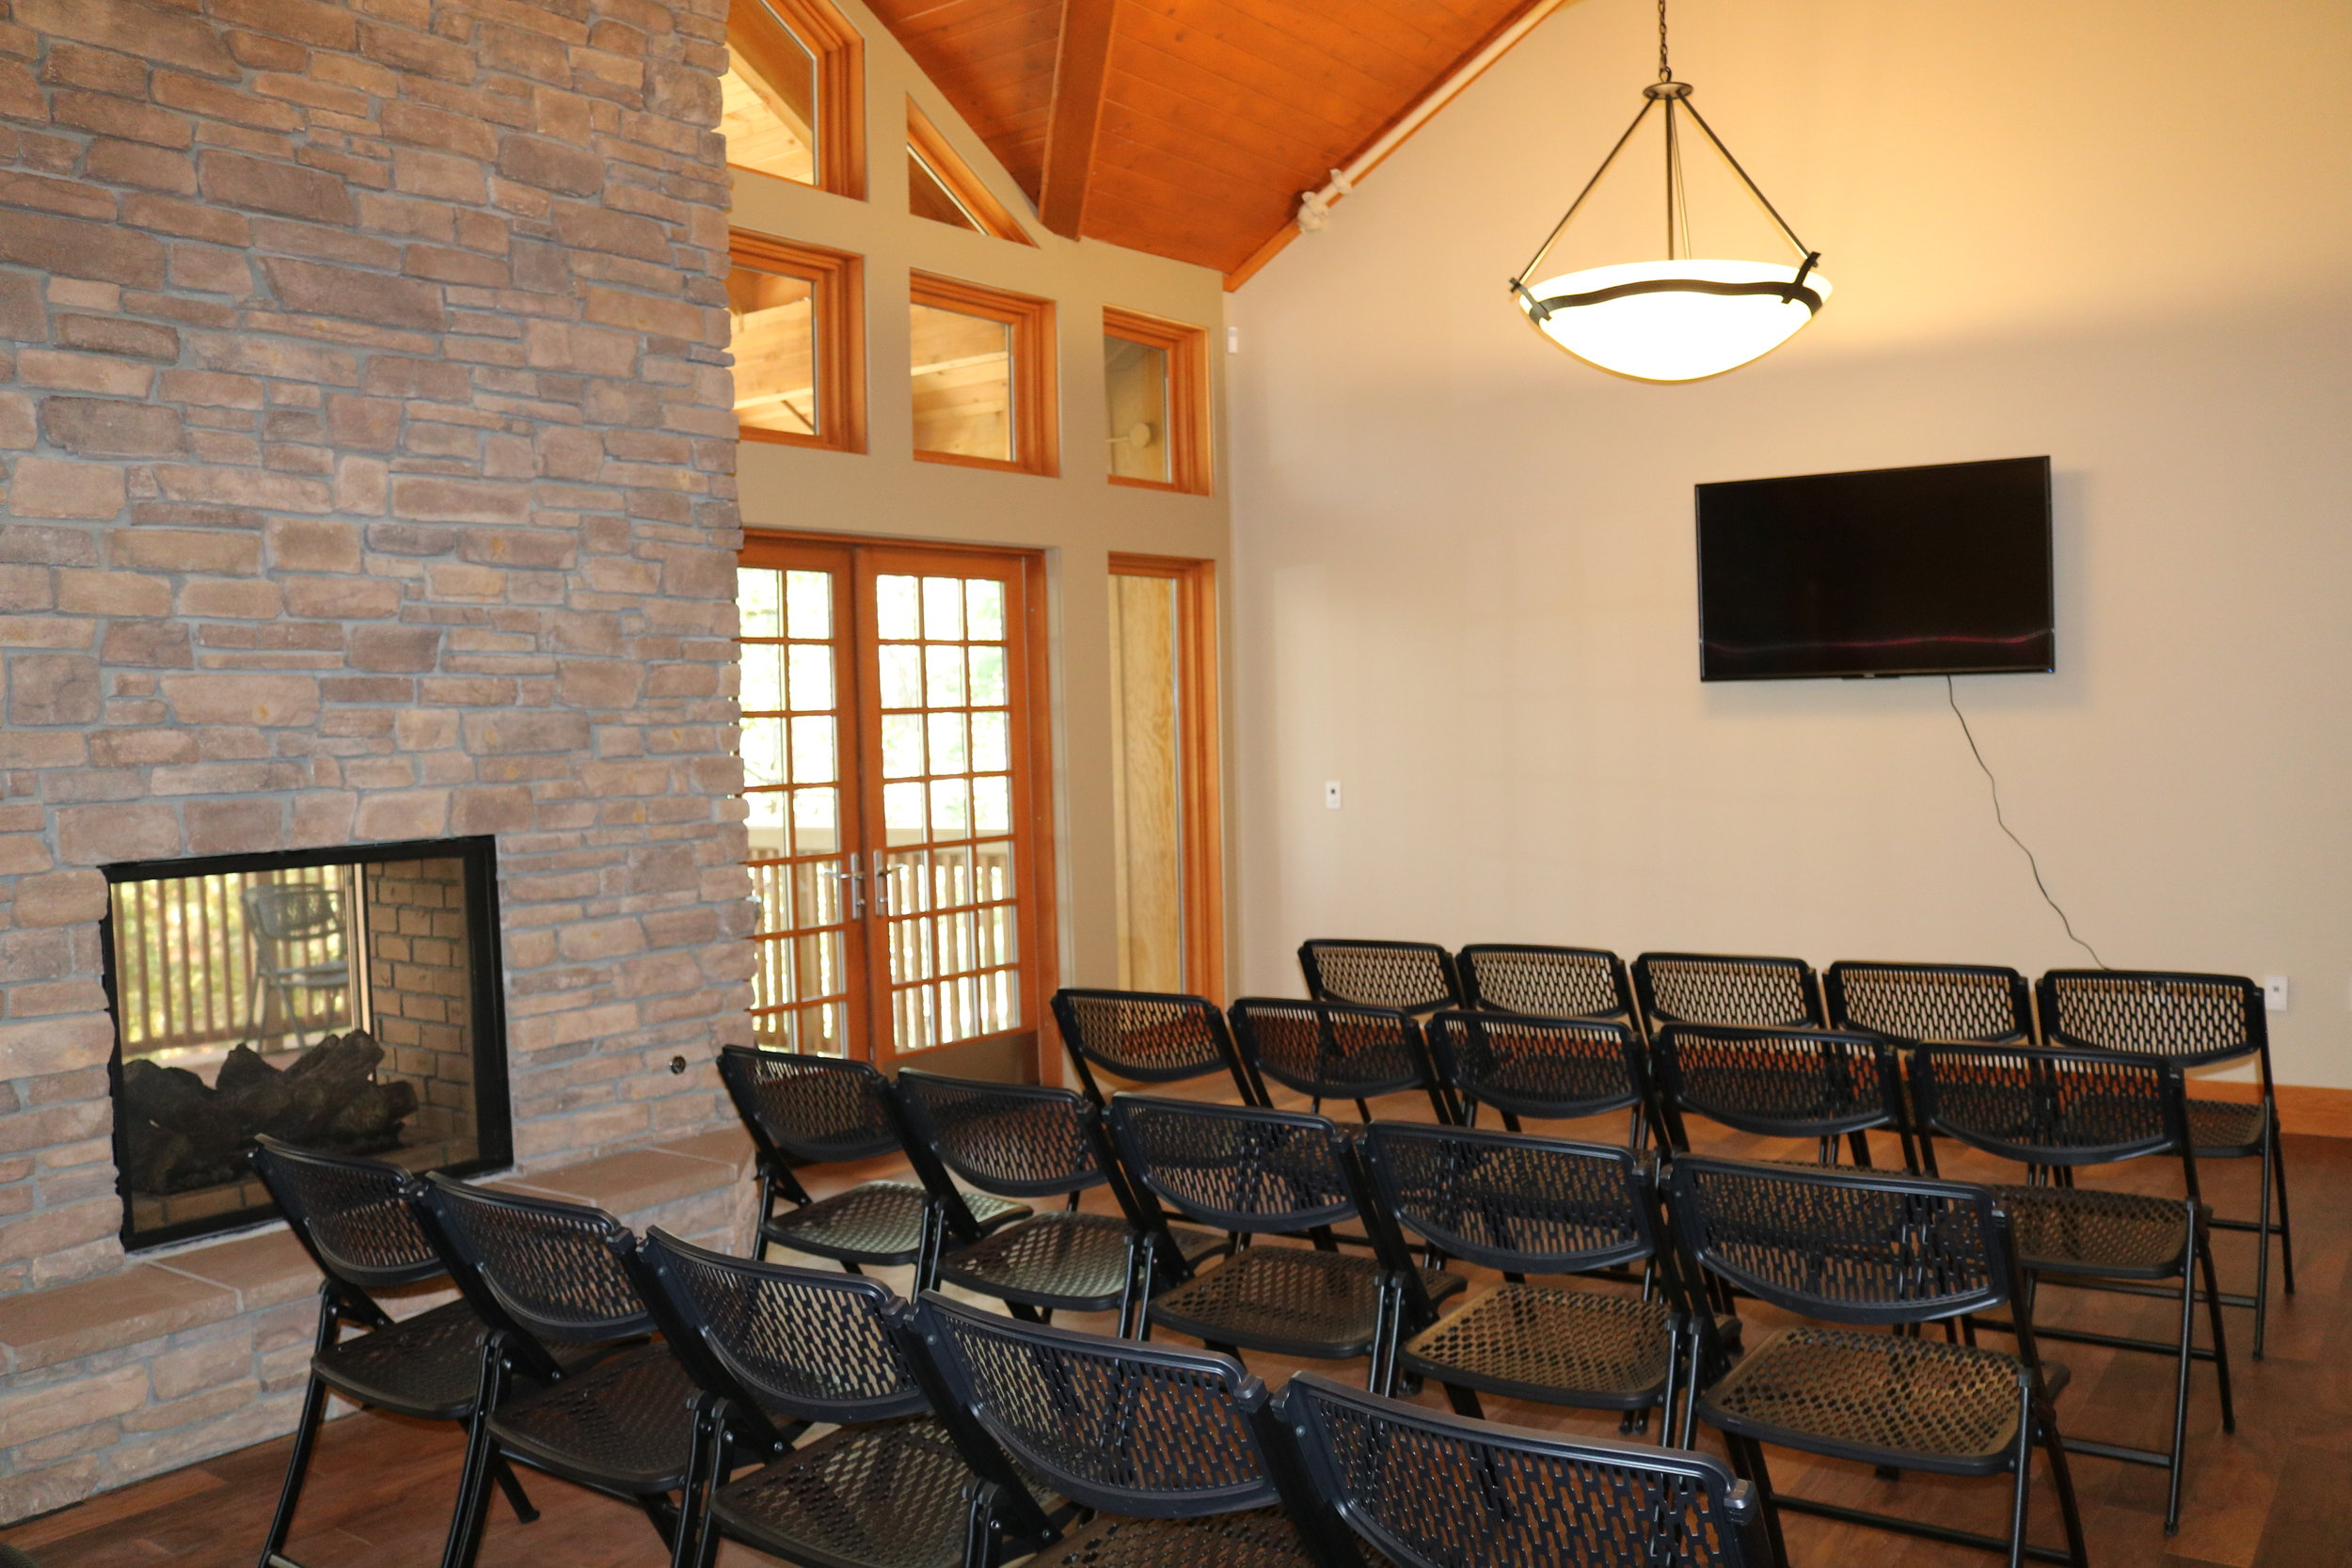 Lodge Meeting Rooms - There is a meeting room identical to the one pictured in each of the three Lodges. Each Meeting Room is available to the guests staying in their perspective Lodge. The room is equipped with an indoor/outdoor fireplace, along with a smart TV and HDMI cable for presentations.